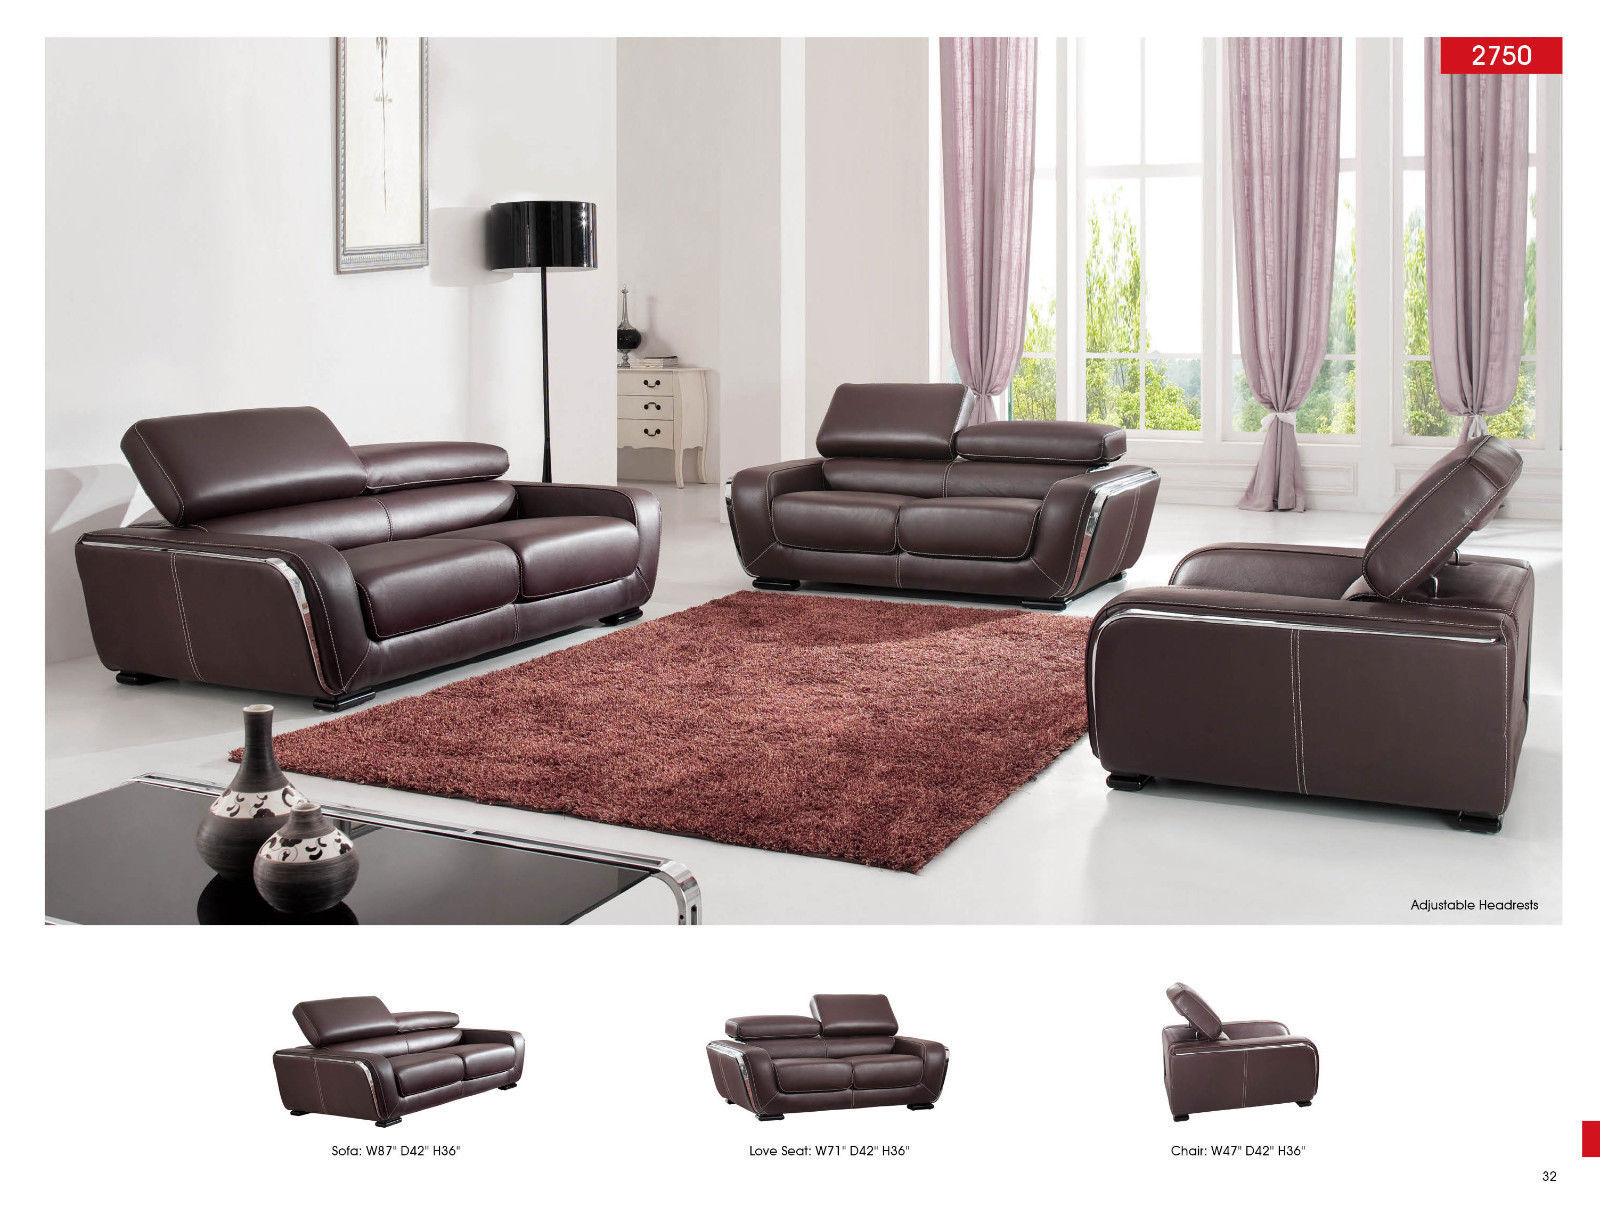 Chic Modern 2750 Italian Leather Sofa Living Room Set Contemporary